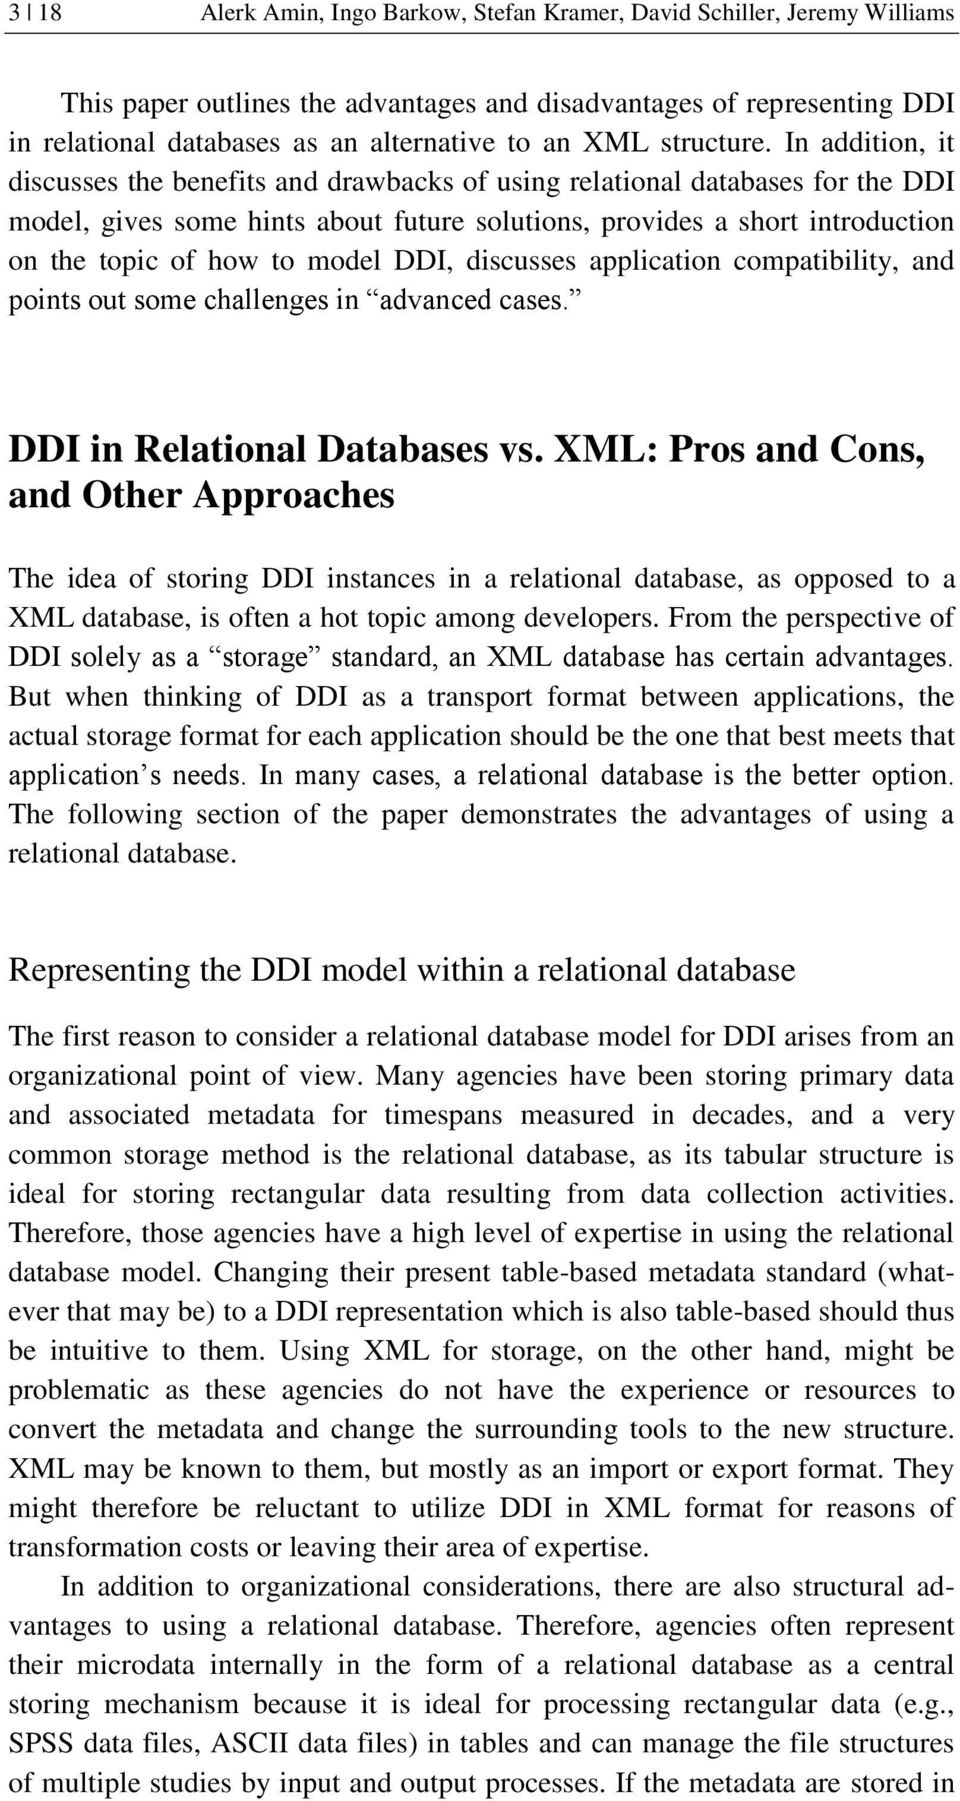 In addition, it discusses the benefits and drawbacks of using relational databases for the DDI model, gives some hints about future solutions, provides a short introduction on the topic of how to